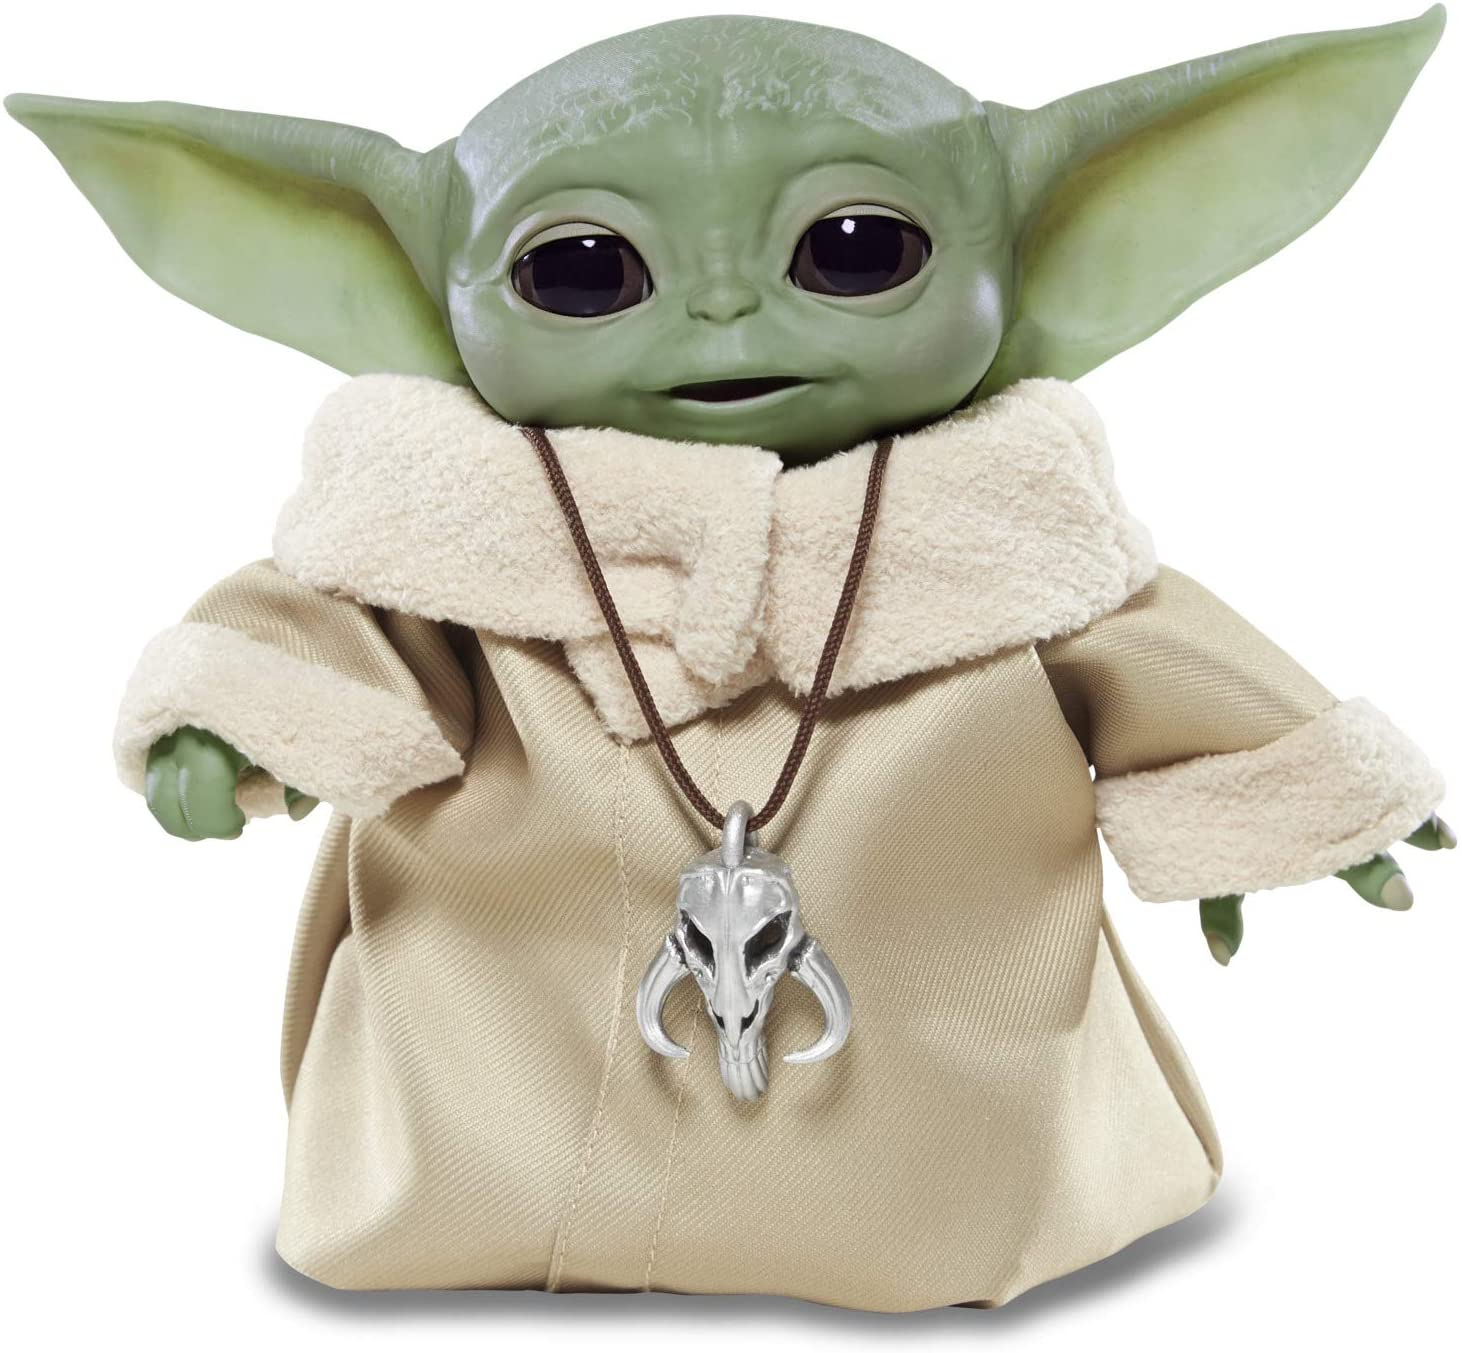 FIGURA ANIMATRONIC STAR WARS F1119 - N47720